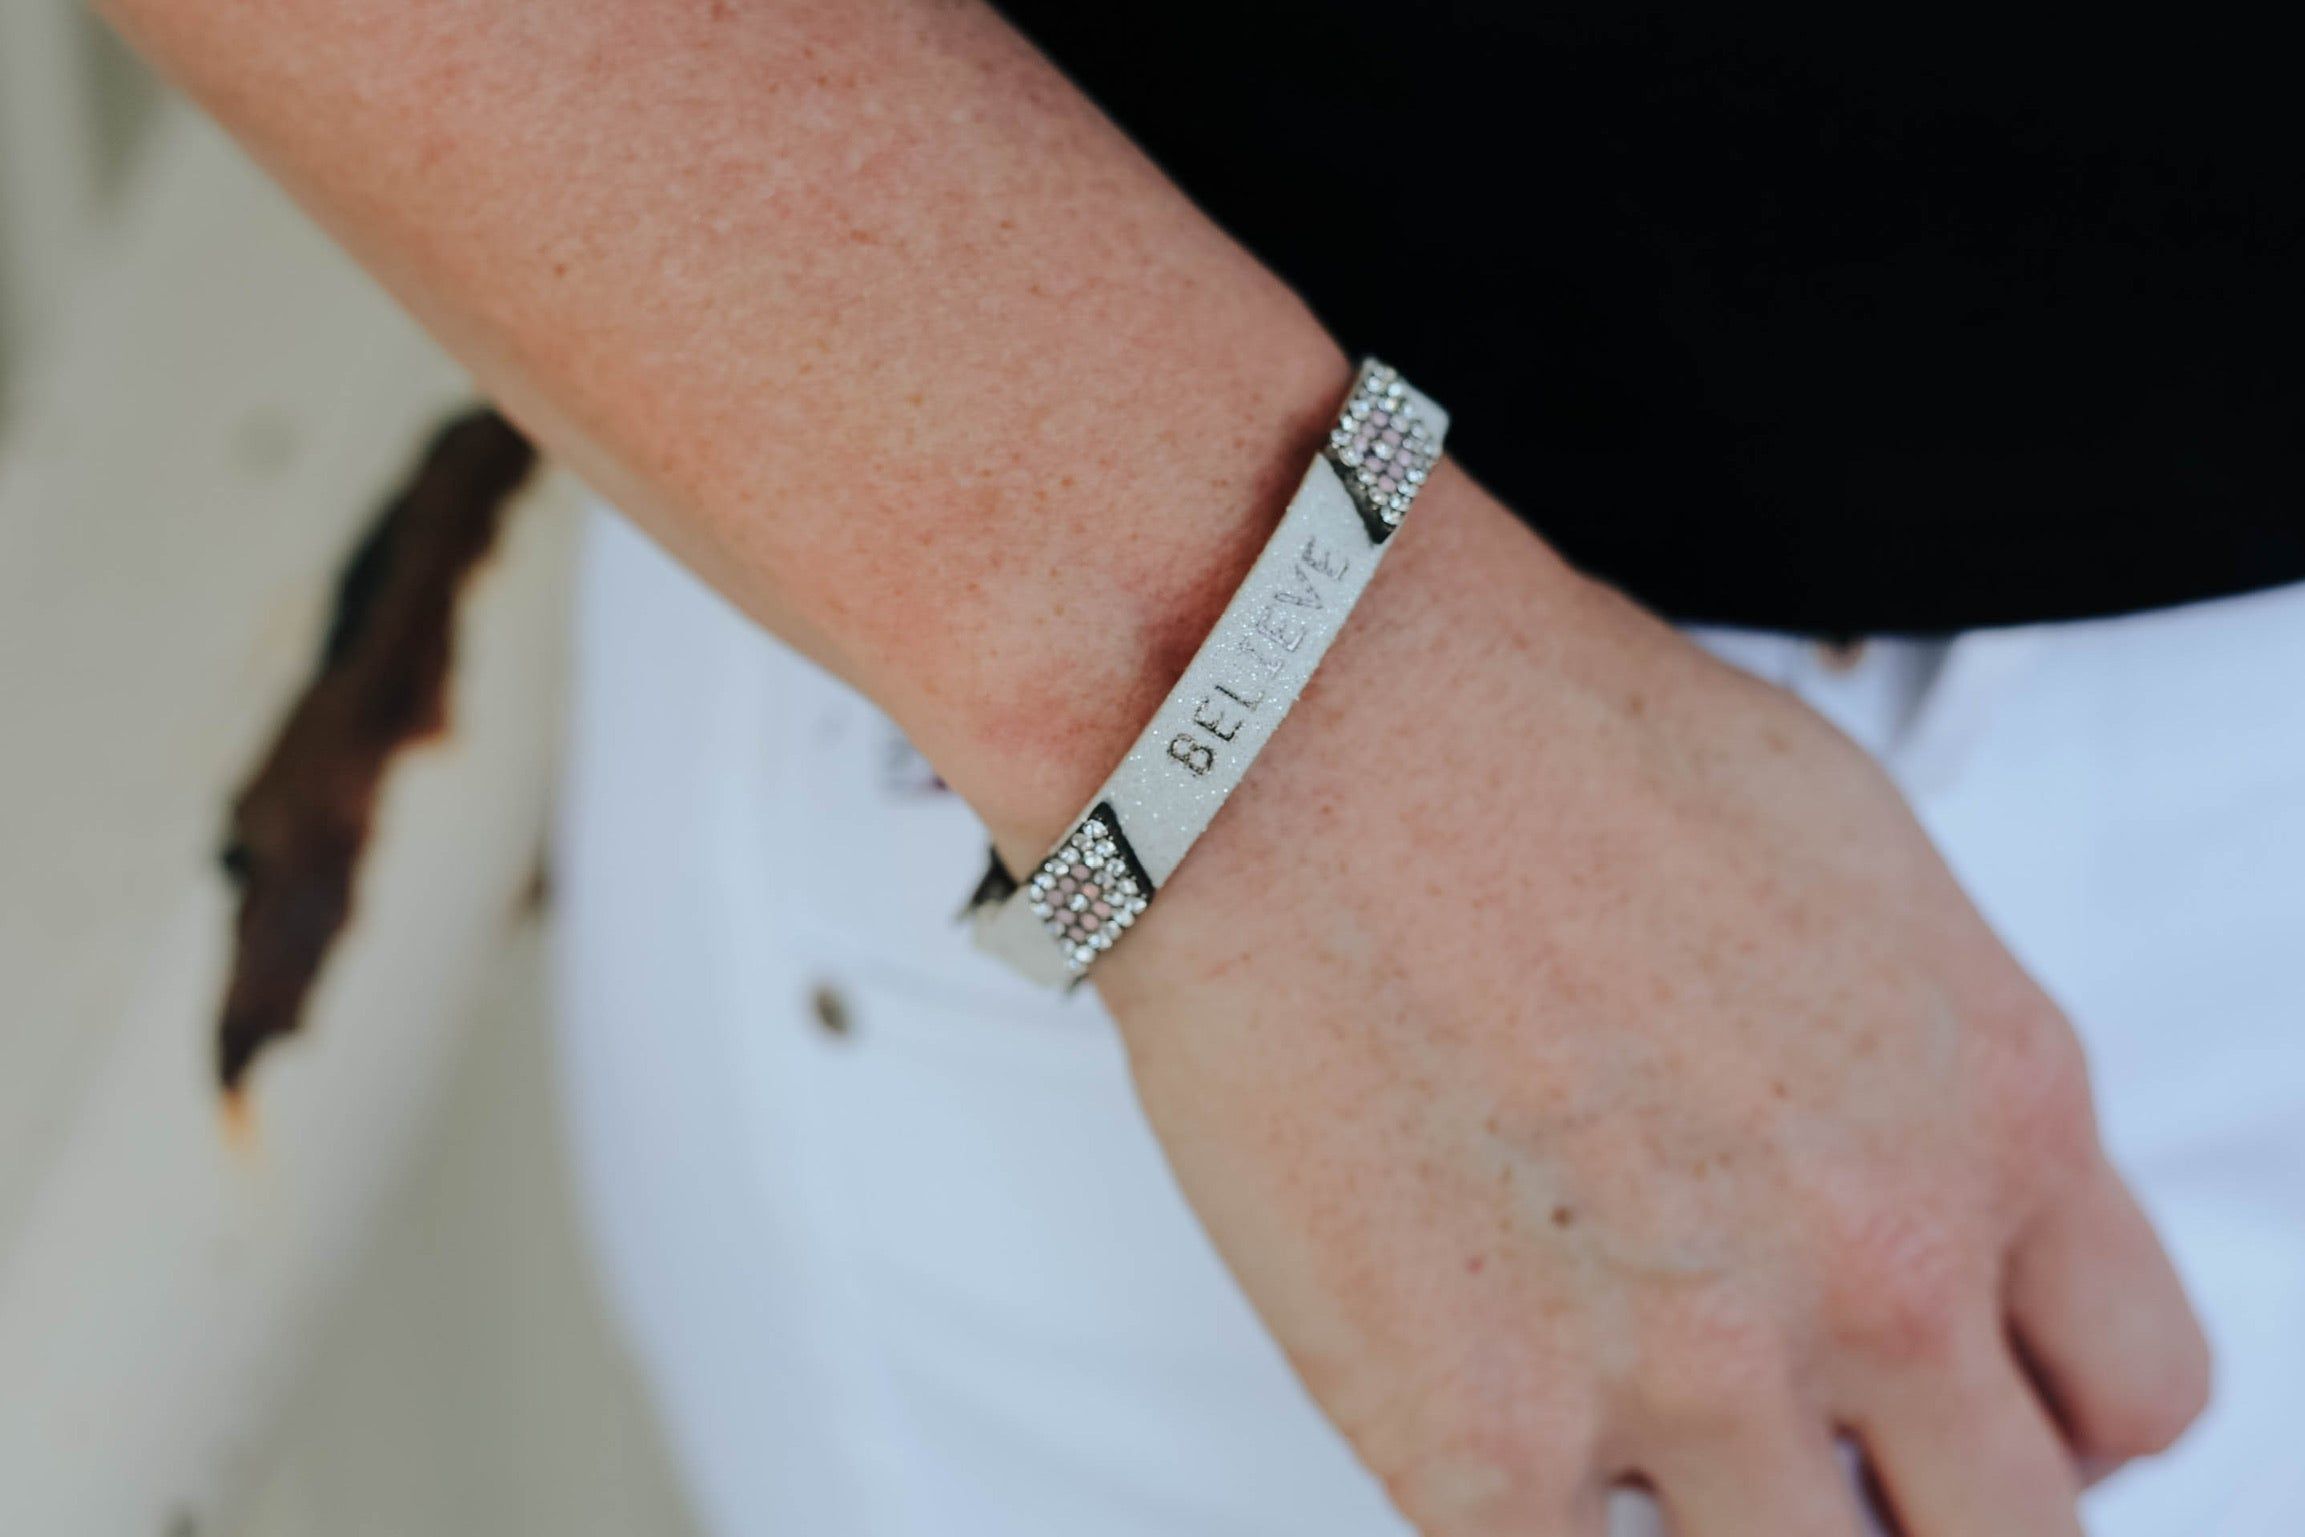 Starlite Good Works Bracelets